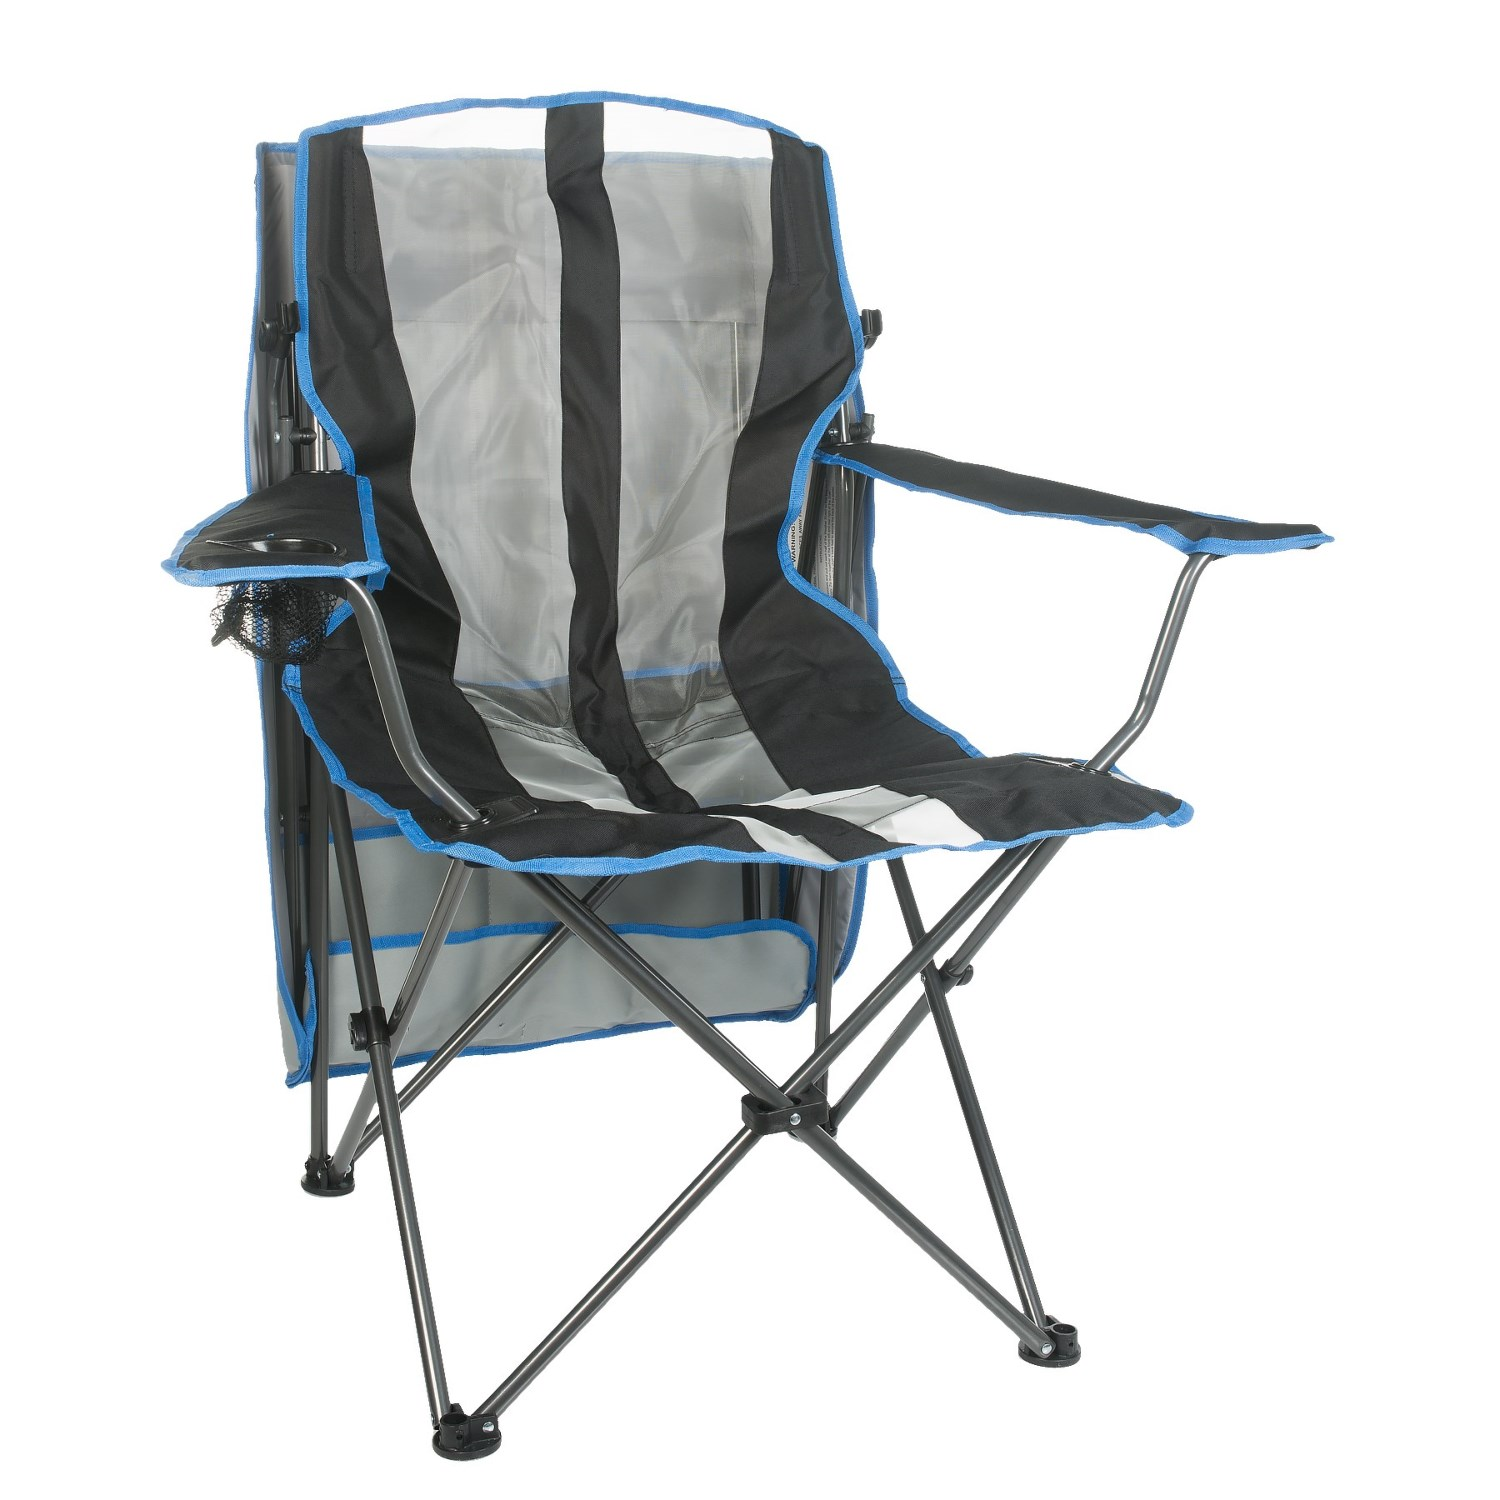 d kelsyus blue outlet chair details prod sears off product convertible jsp canopy